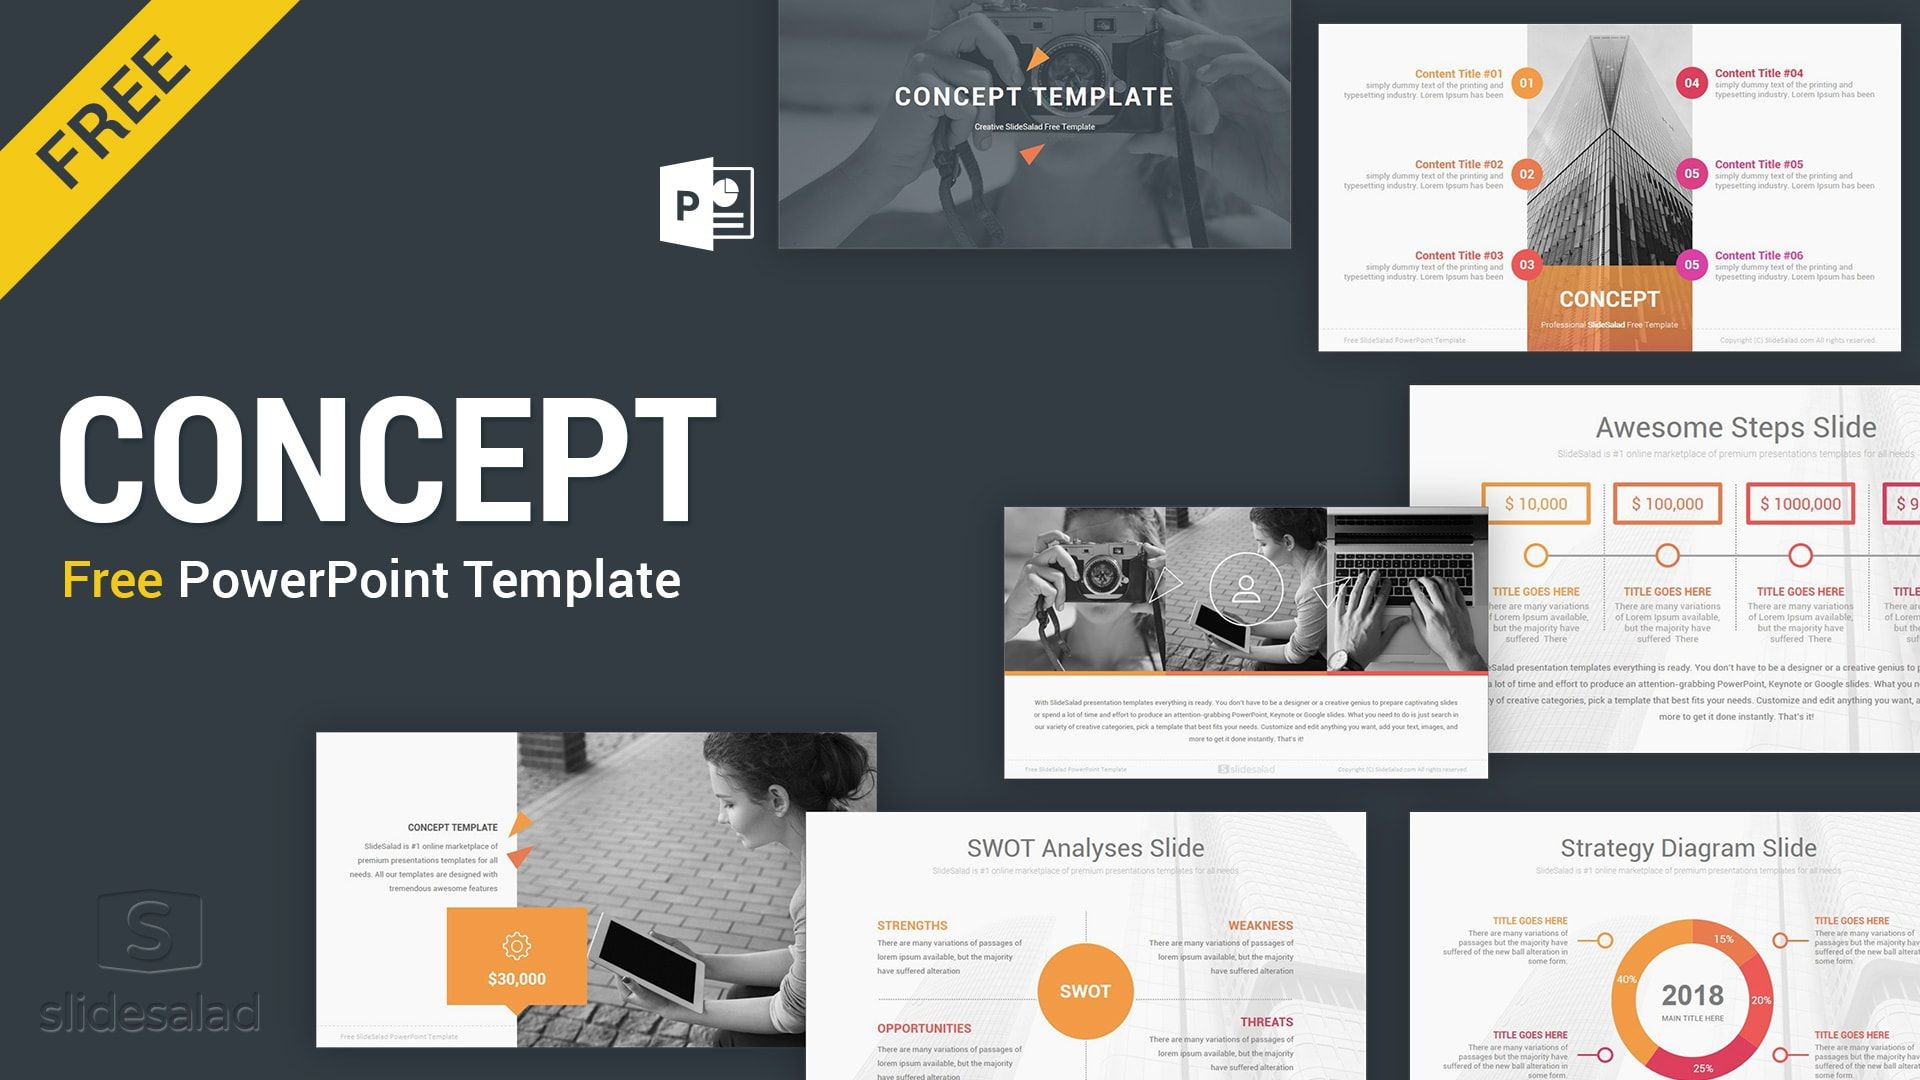 004 Simple Power Point Presentation Template Free Highest Clarity  Powerpoint Layout Download 2019 Modern Busines1920